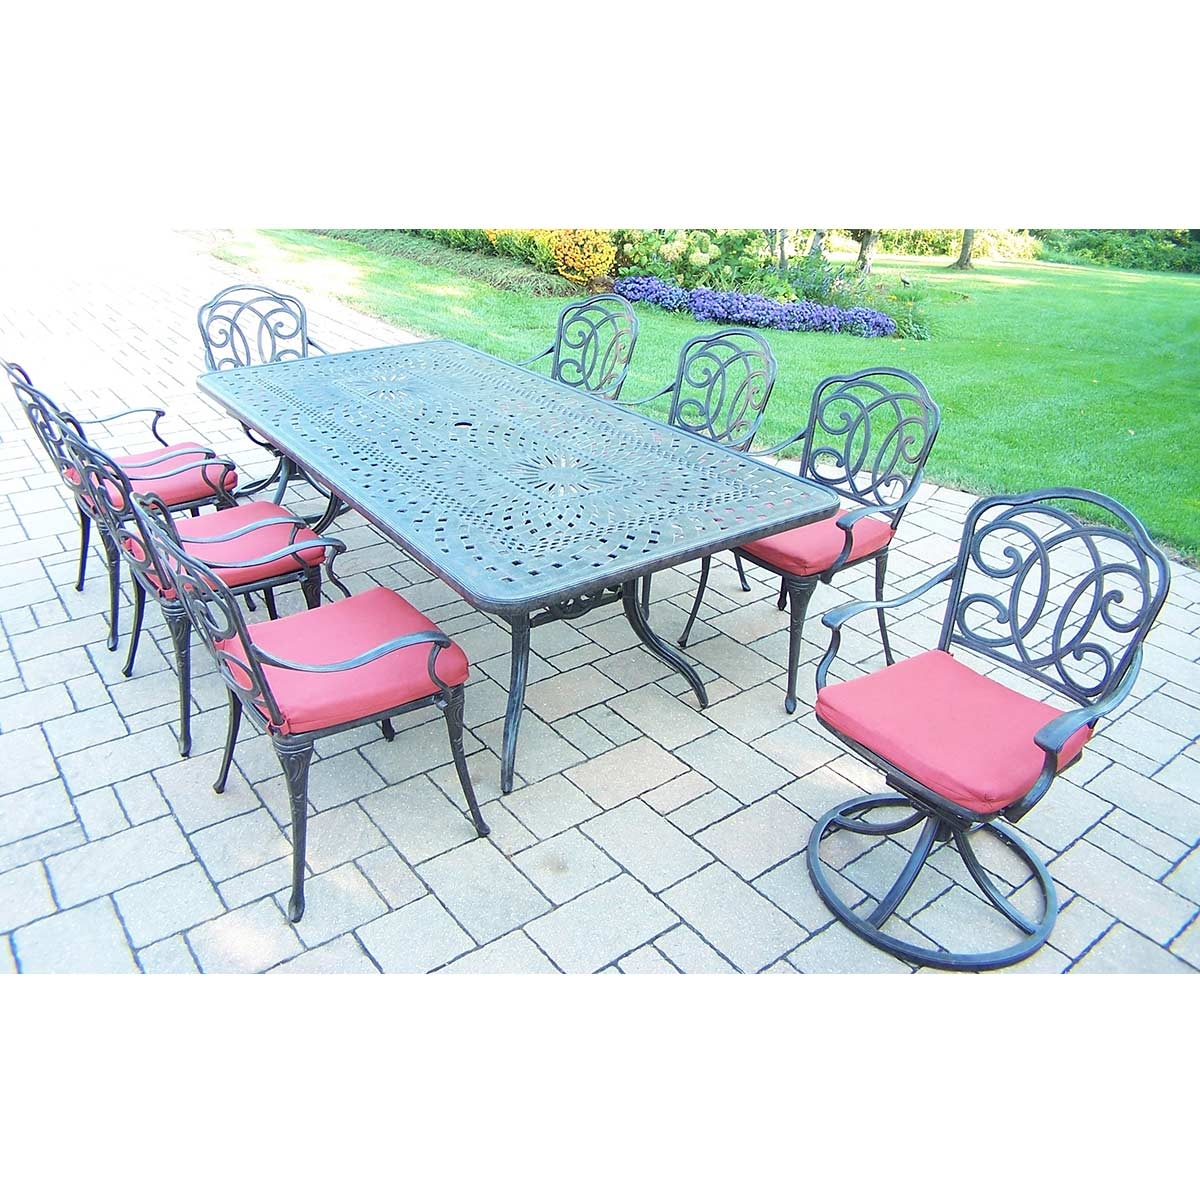 how to get rust off metal patio furniture